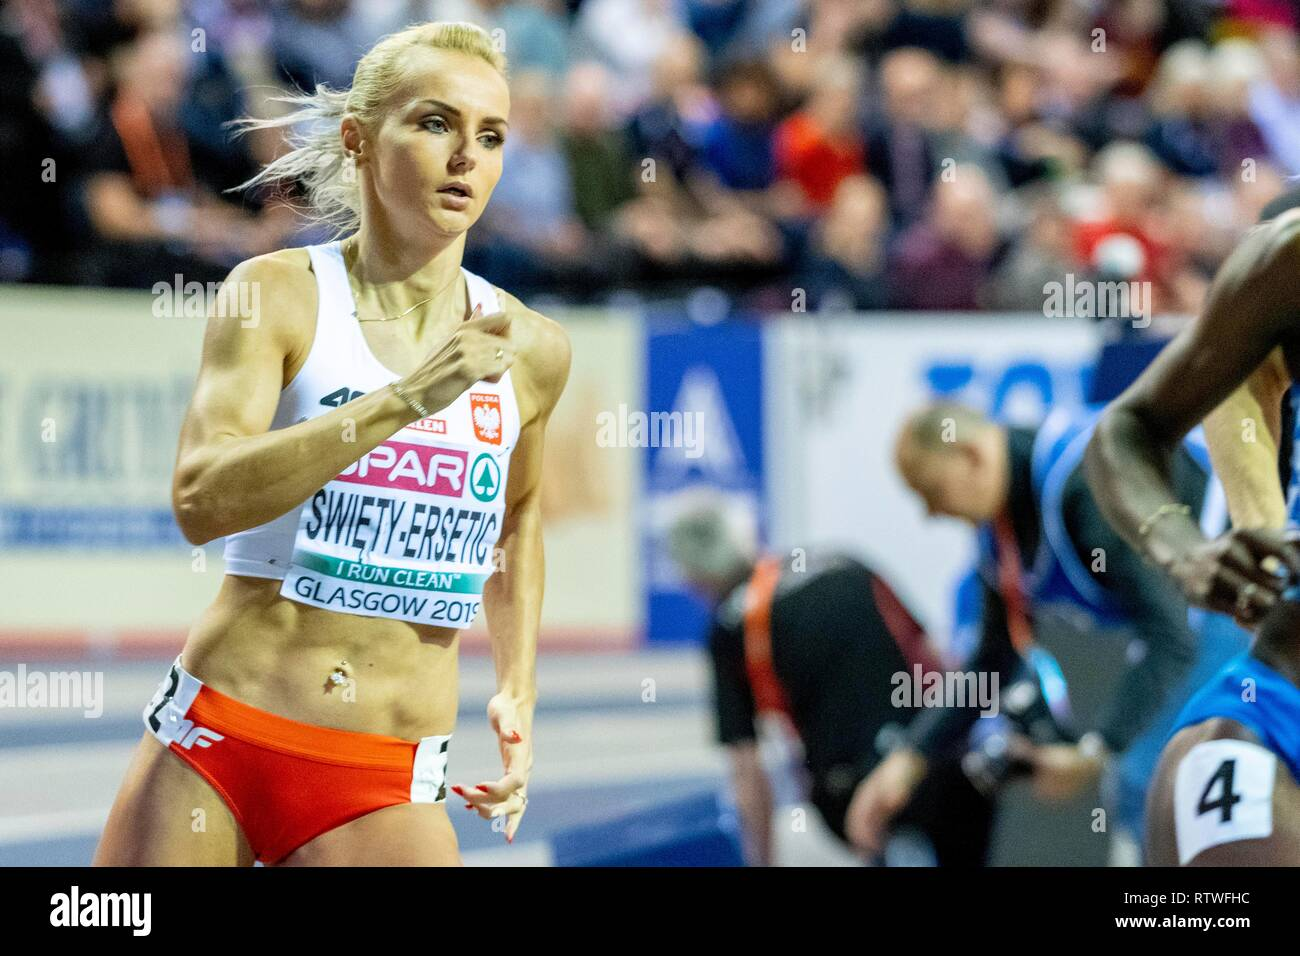 Glasgow, Scotland, UK. 2nd March, 2019. SWIETY-ERSETIC Justyna POL competing in the 400m Women Final event during day TWO of the European Athletics Indoor Championships 2019 at Emirates Arena  in Glasgow, Scotland, United Kingdom. 2.03.2019 Credit: Cronos/Alamy Live News - Stock Image